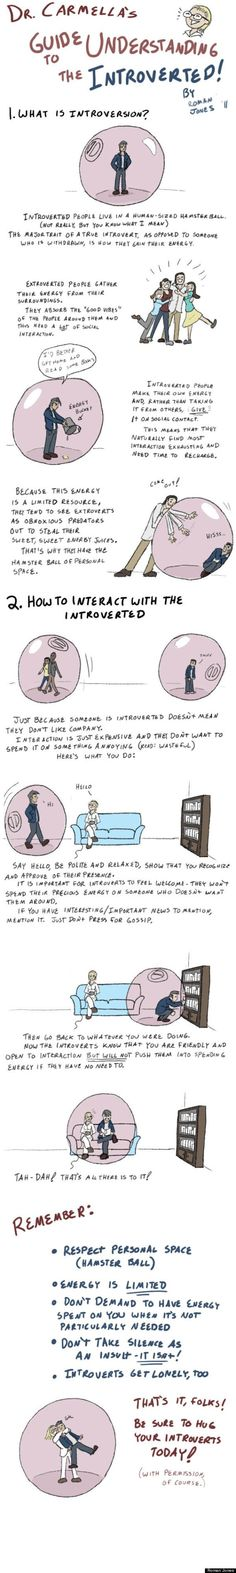 The completely perfect guide to understanding introverts.